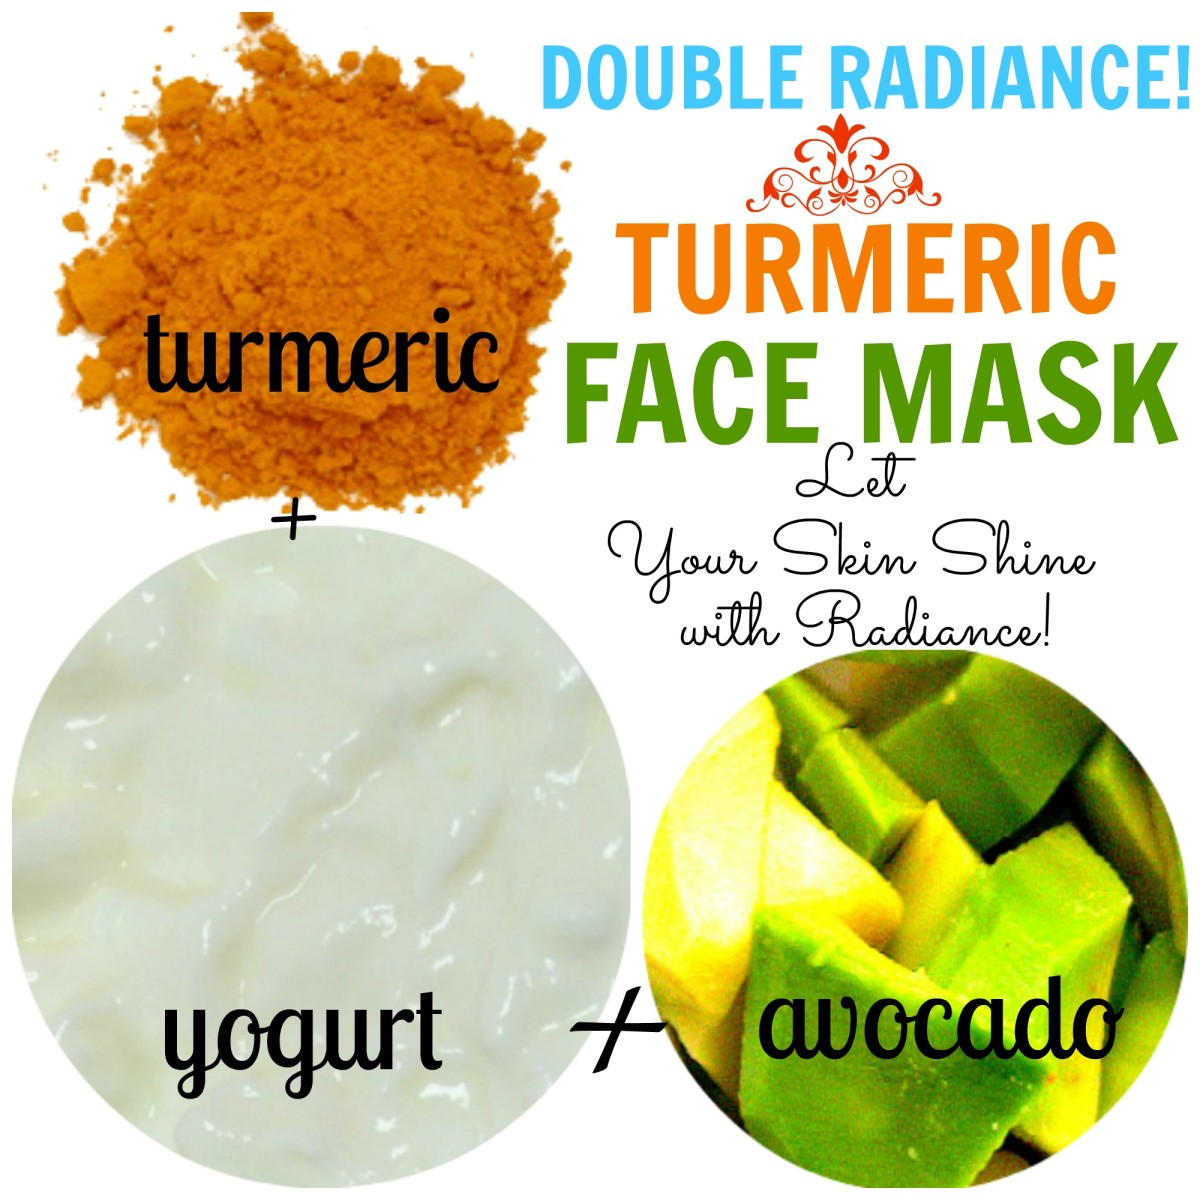 This turmeric avocado yogurt face mask will make dull skin radiant.